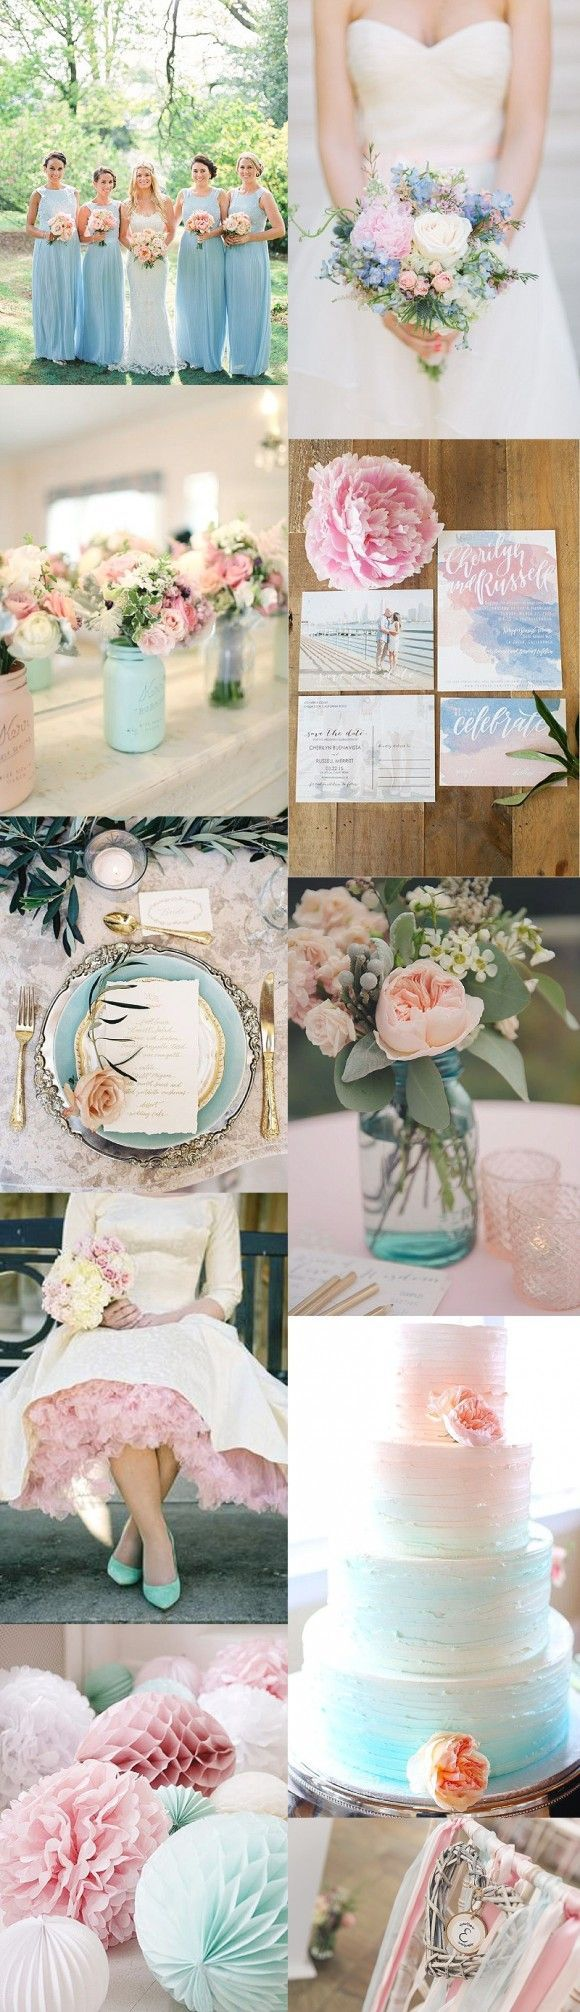 Pantone has introduced two colours for 2016 – rose quartz & serenity - both of which make dreamy wedding colours, either alone or when combined together.